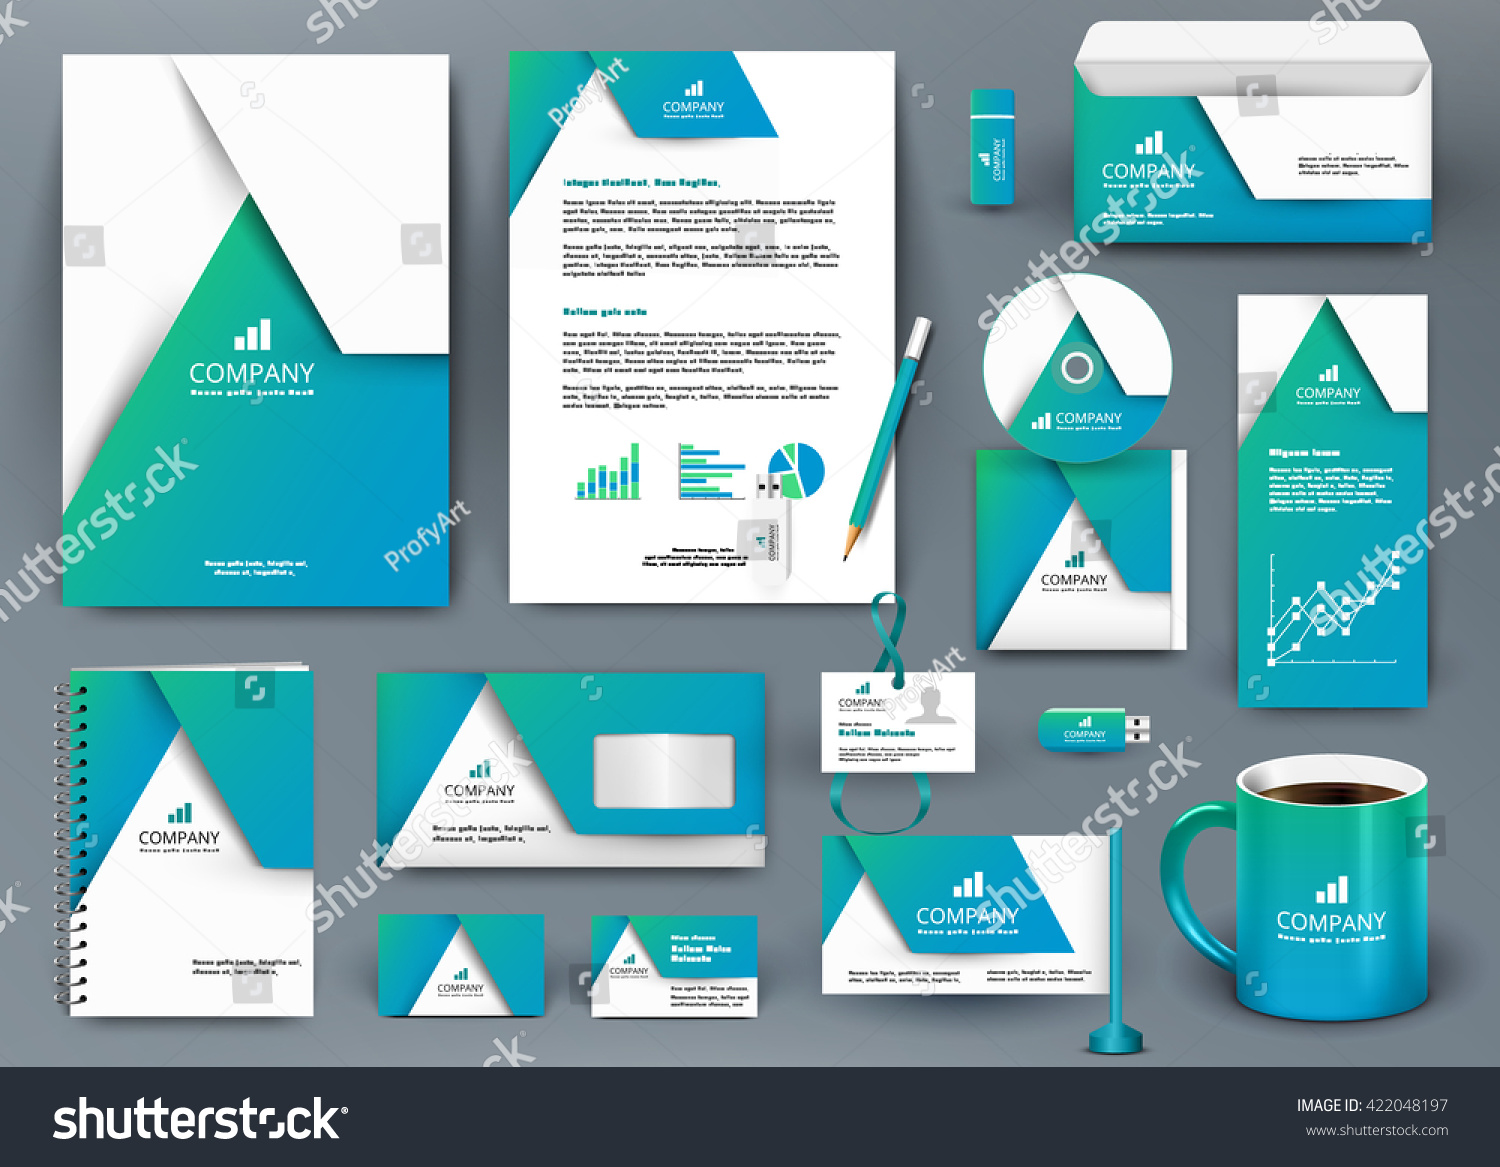 professional universal blue branding design kit stock vector professional universal blue branding design kit origami element corporate identity template business stationery